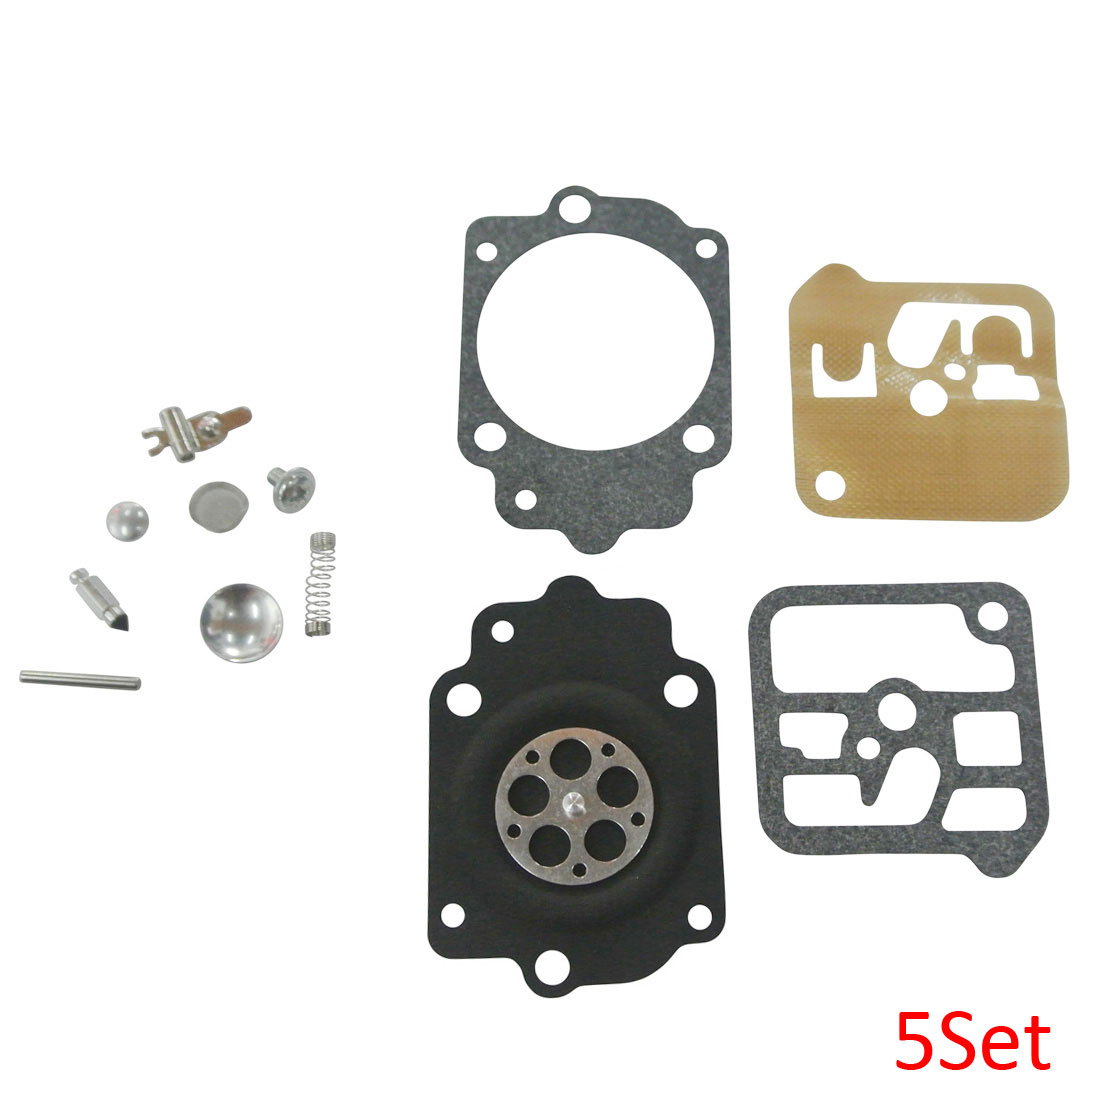 Carburetor Repair Diaphragm Tillotson RK-1HE Kit For Jonsereds 535 HE-12A 5Set